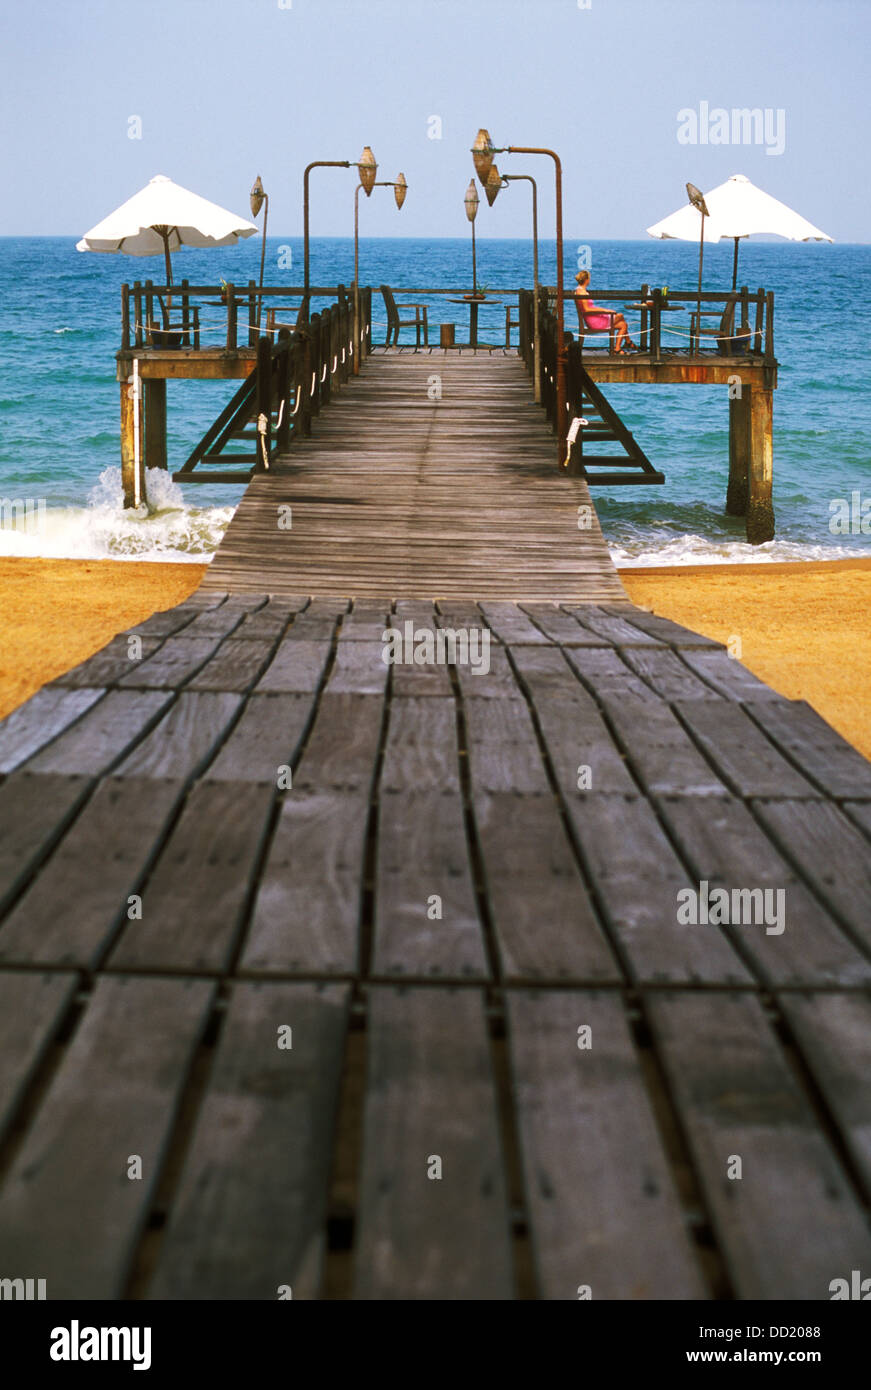 A pontoon in Nha Trang on the South China Sea. A lone women is sitting admiring the setting. - Stock Image